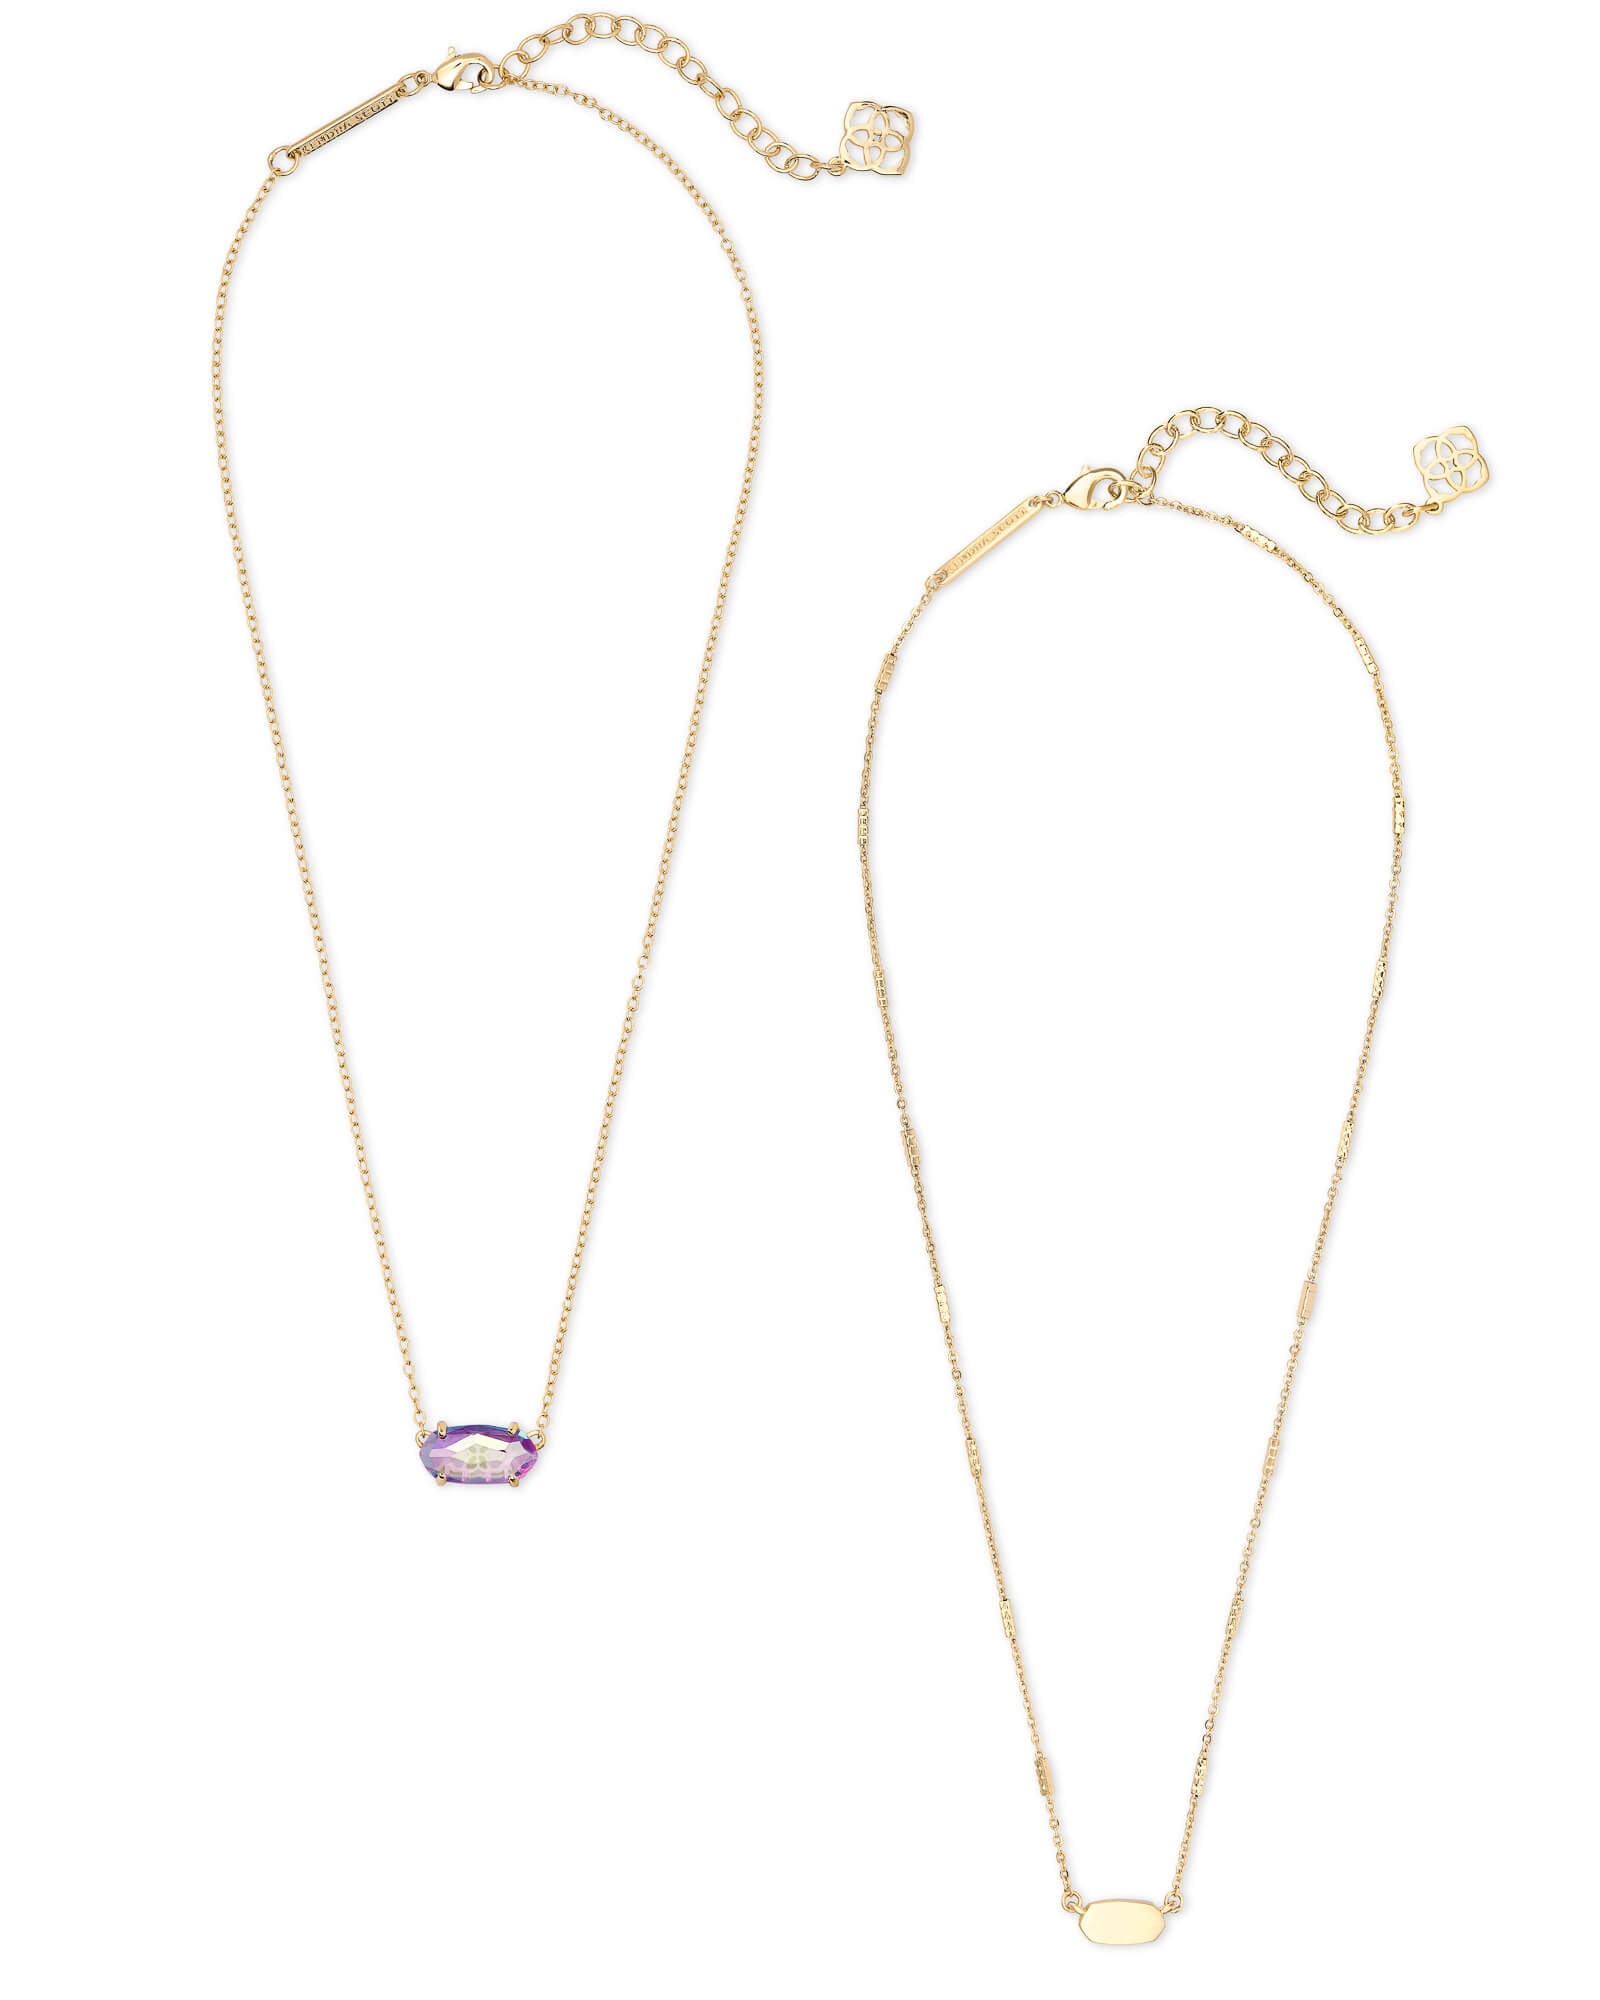 Fern & Ever Necklaces Gift Set